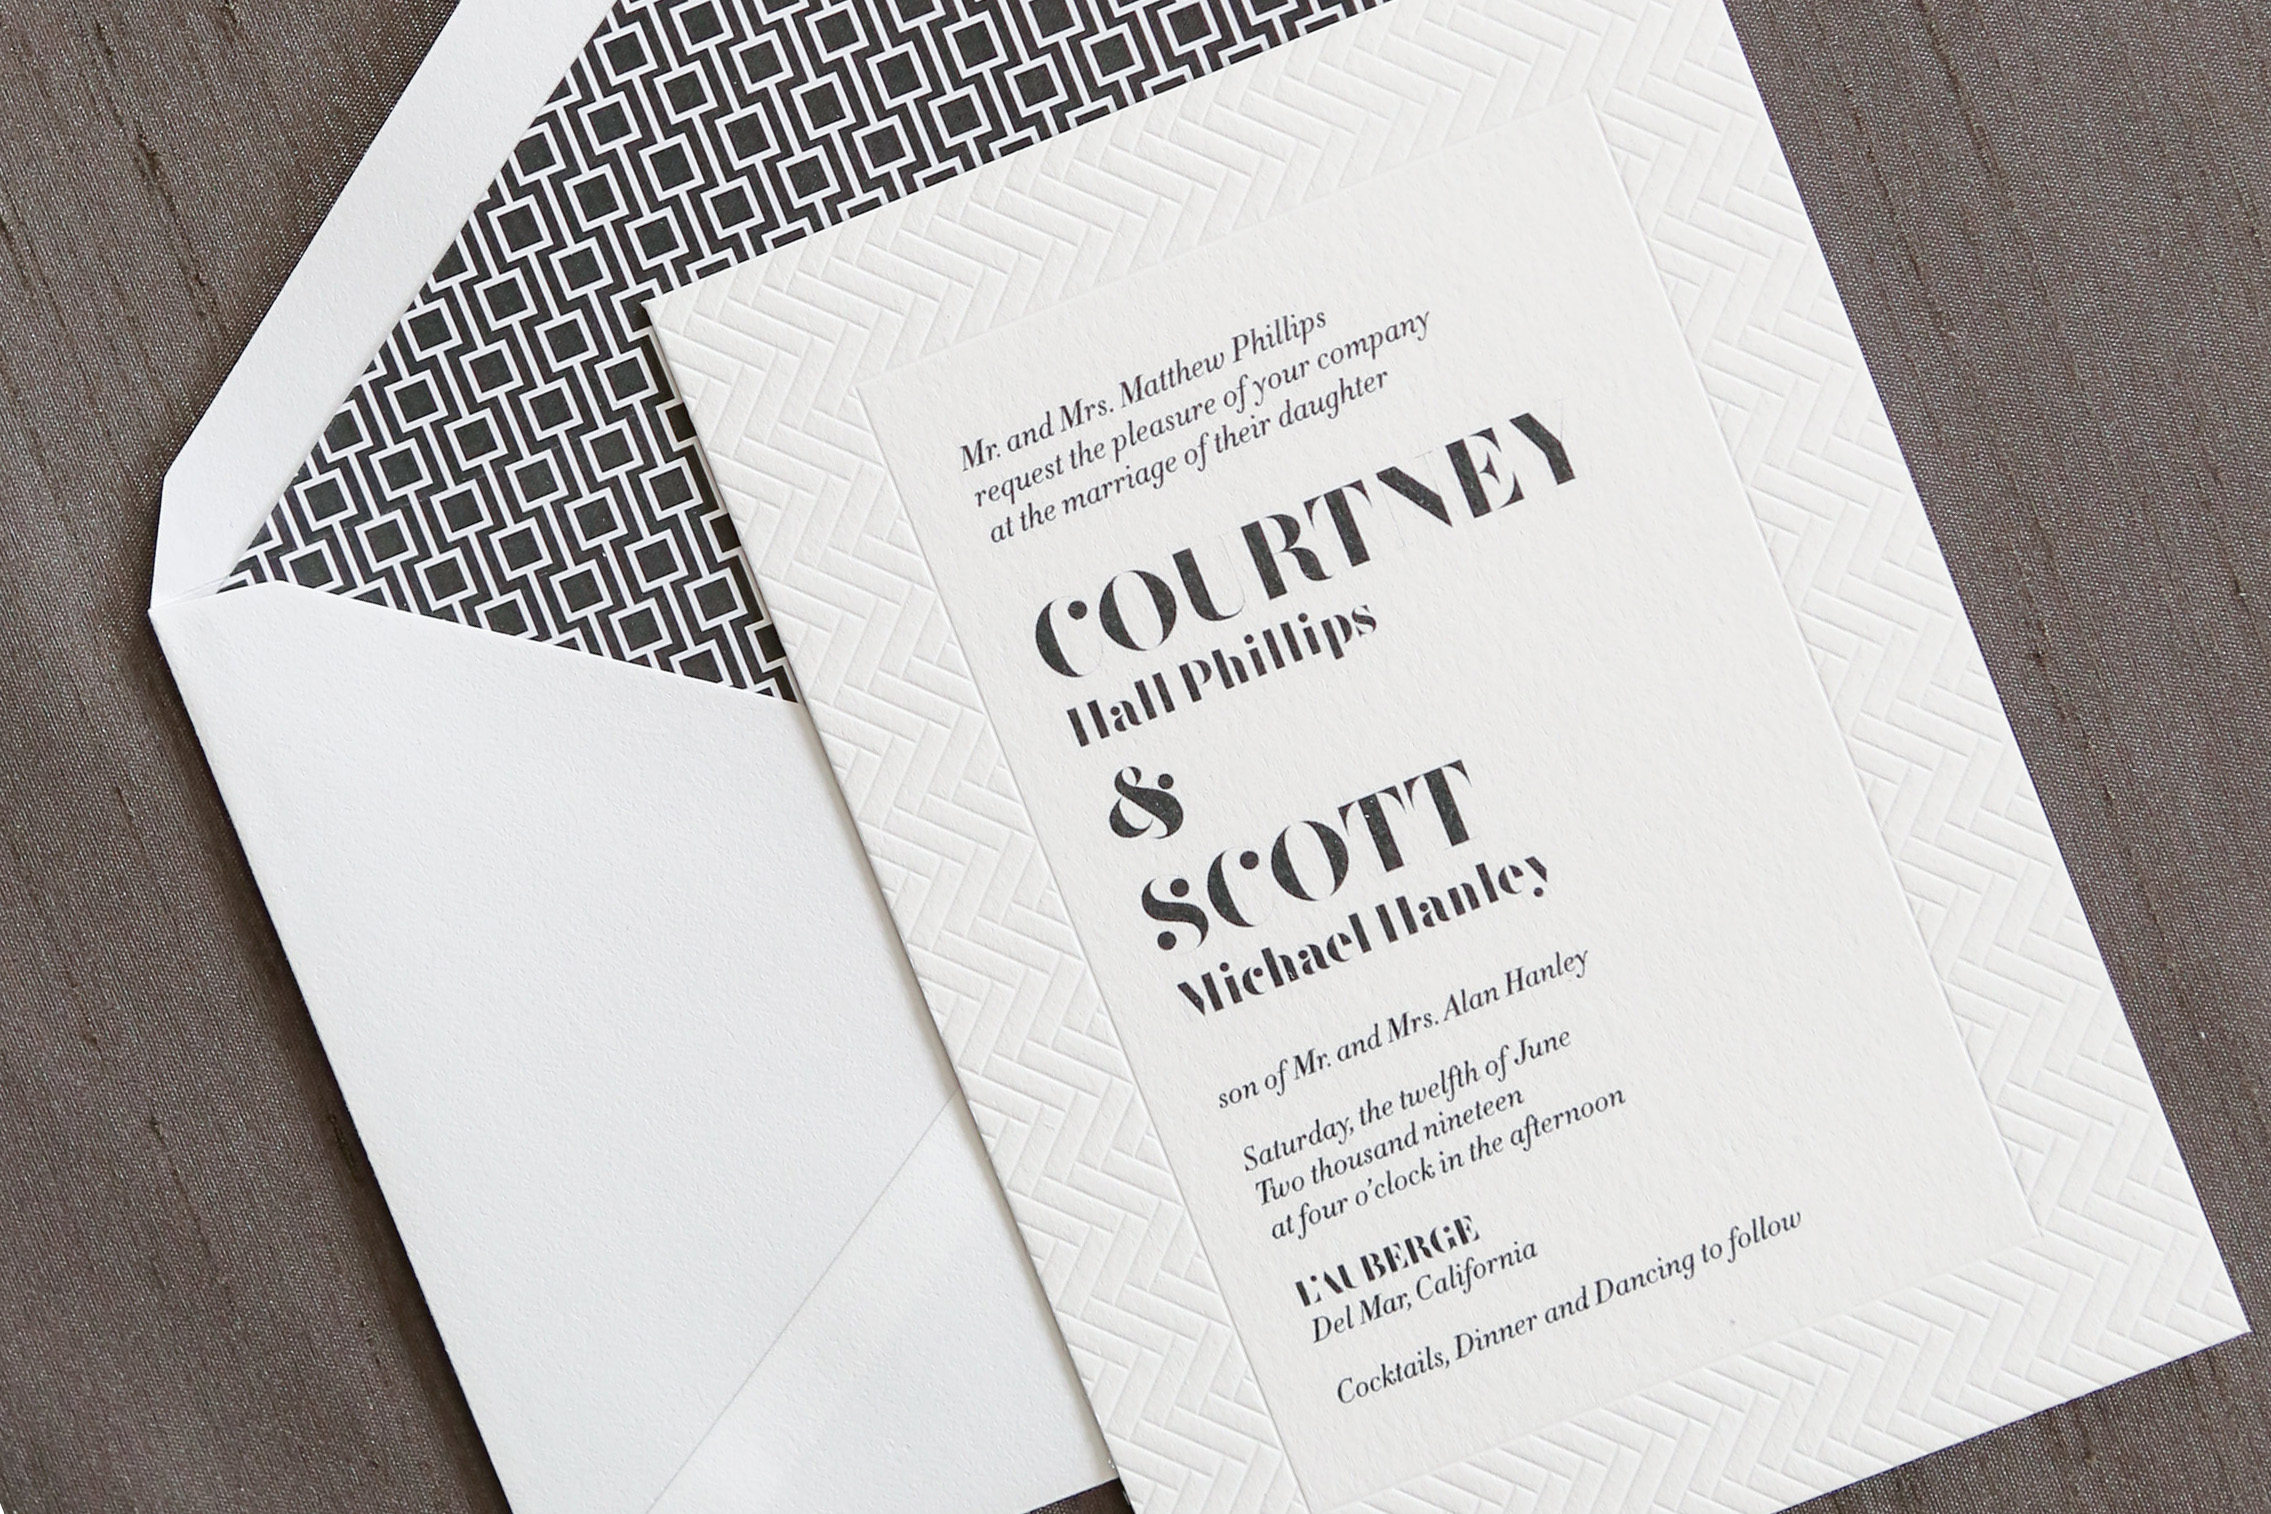 Alinea Wedding Invitation Suite available at Staccato features 1 color thermography with blind impression border, bold text, and a geometric envelope liner. Contemporary yet formal, this invitation makes a bold statement.